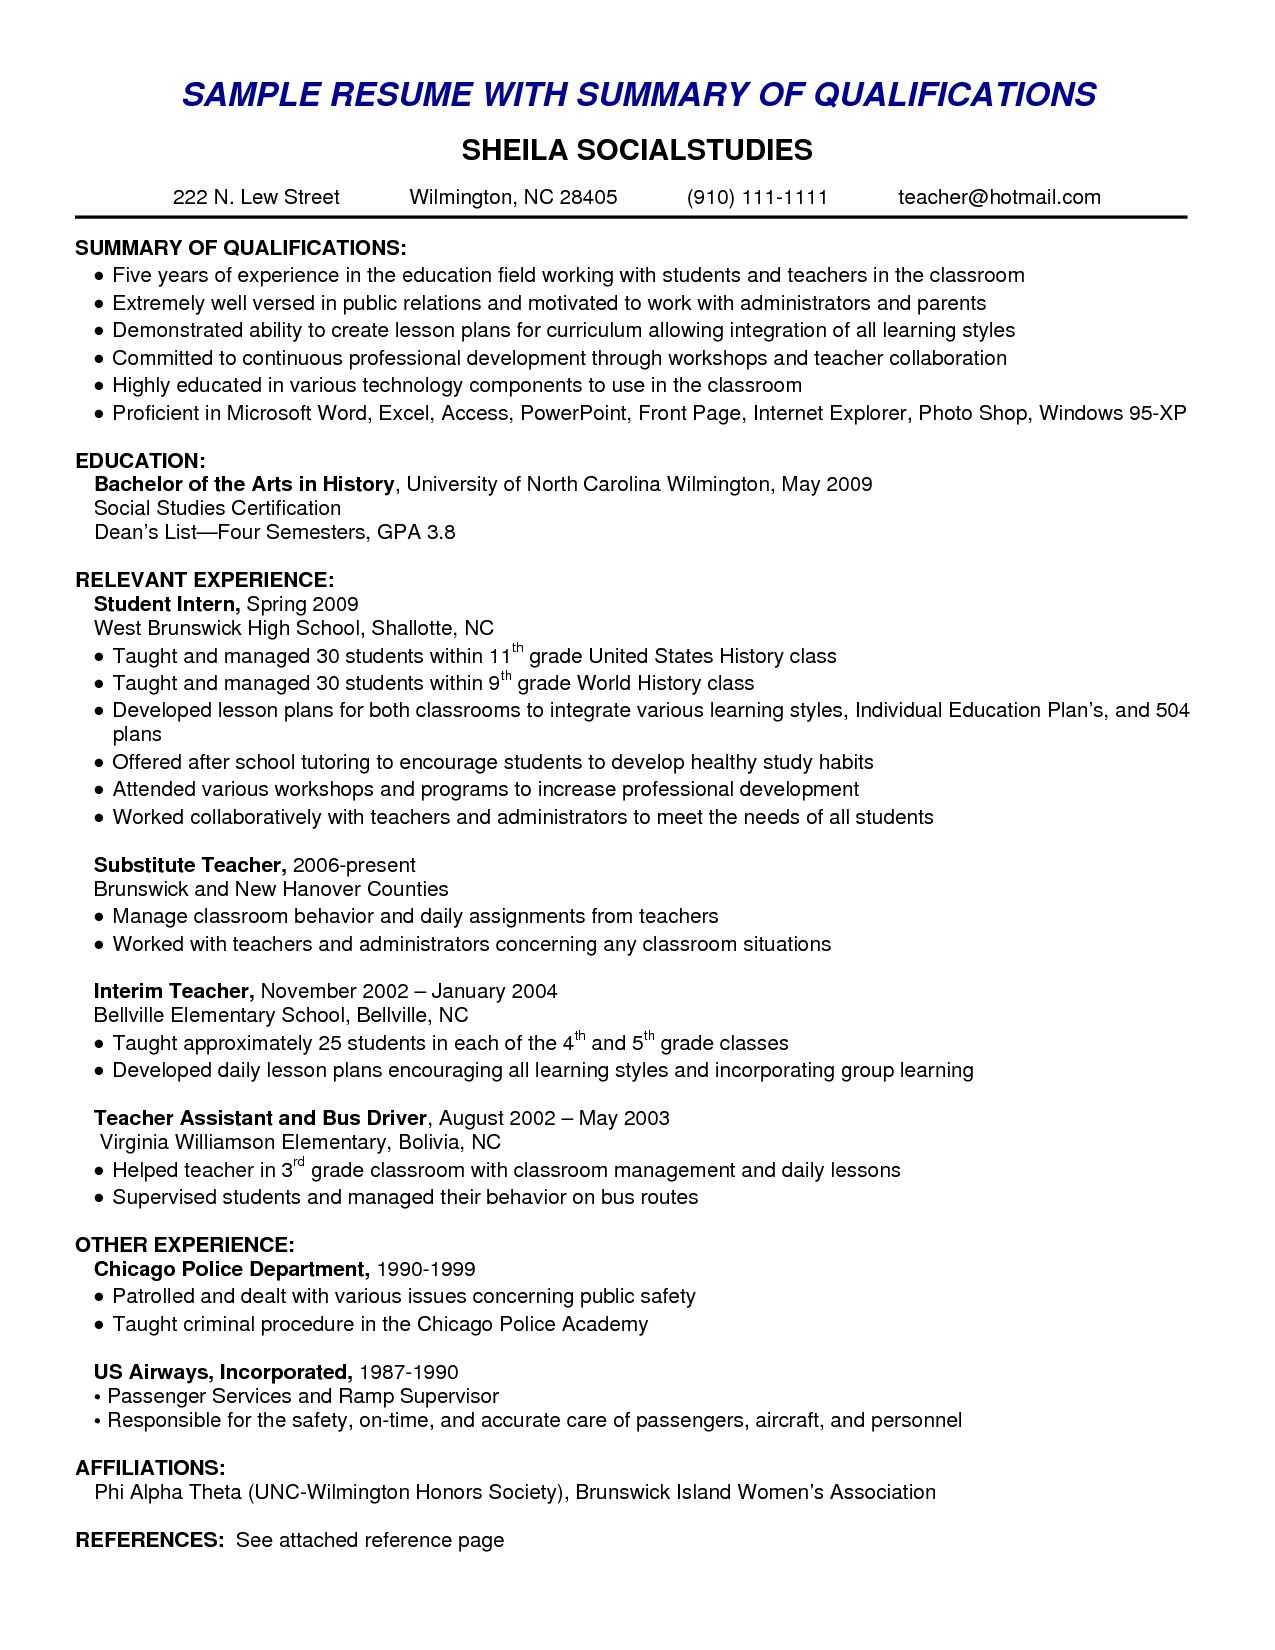 resume skills summary examples example of for amusing good graduate assistant supply Resume Skills Summary For Resume